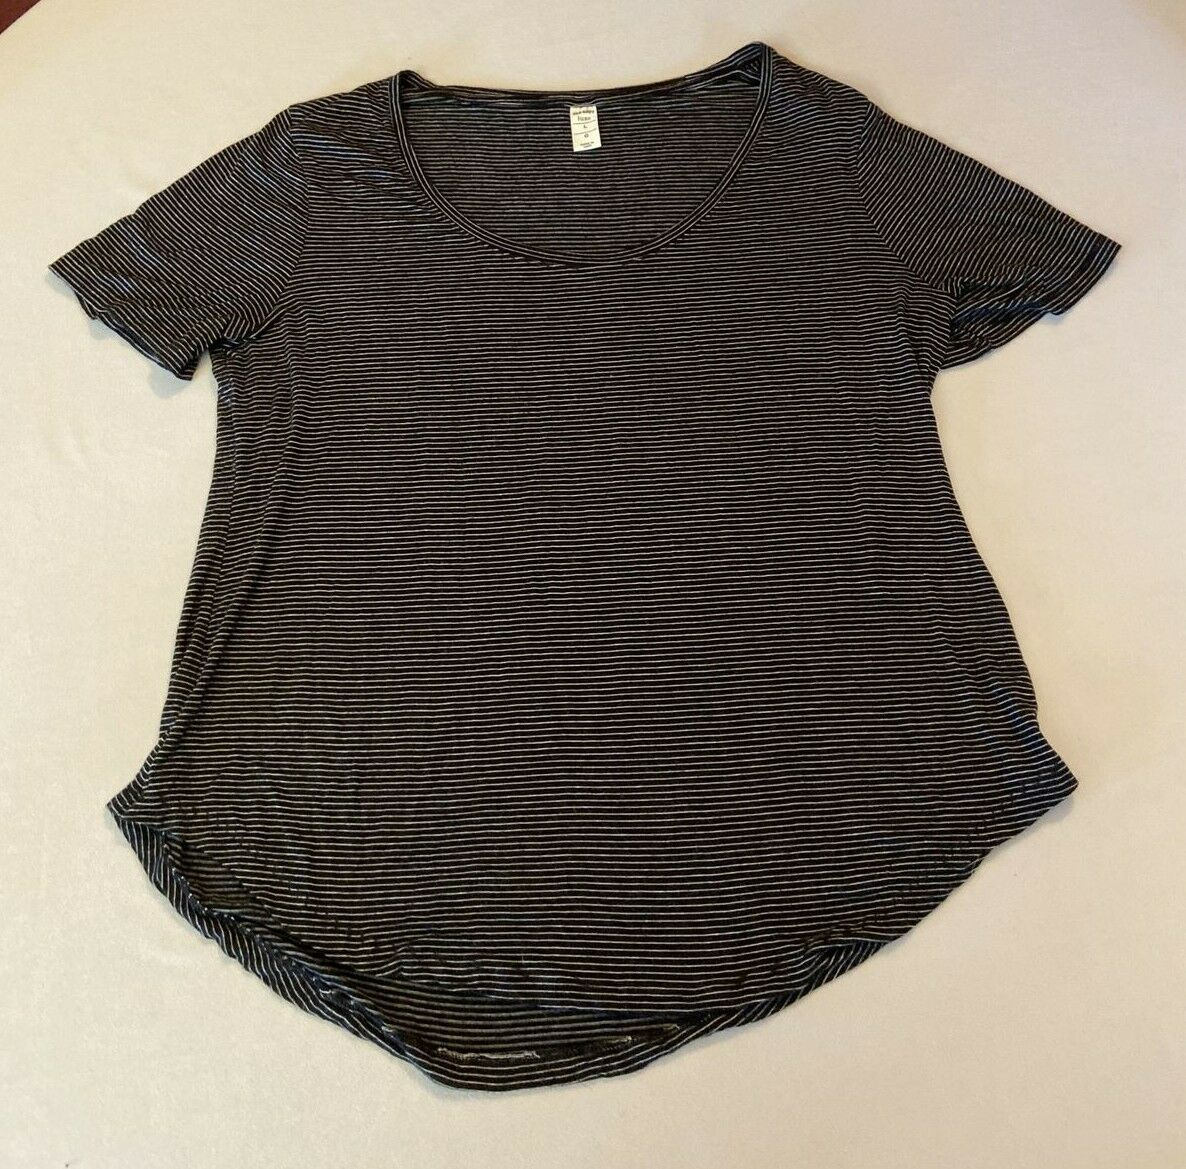 Old Navy women's luxe top size L